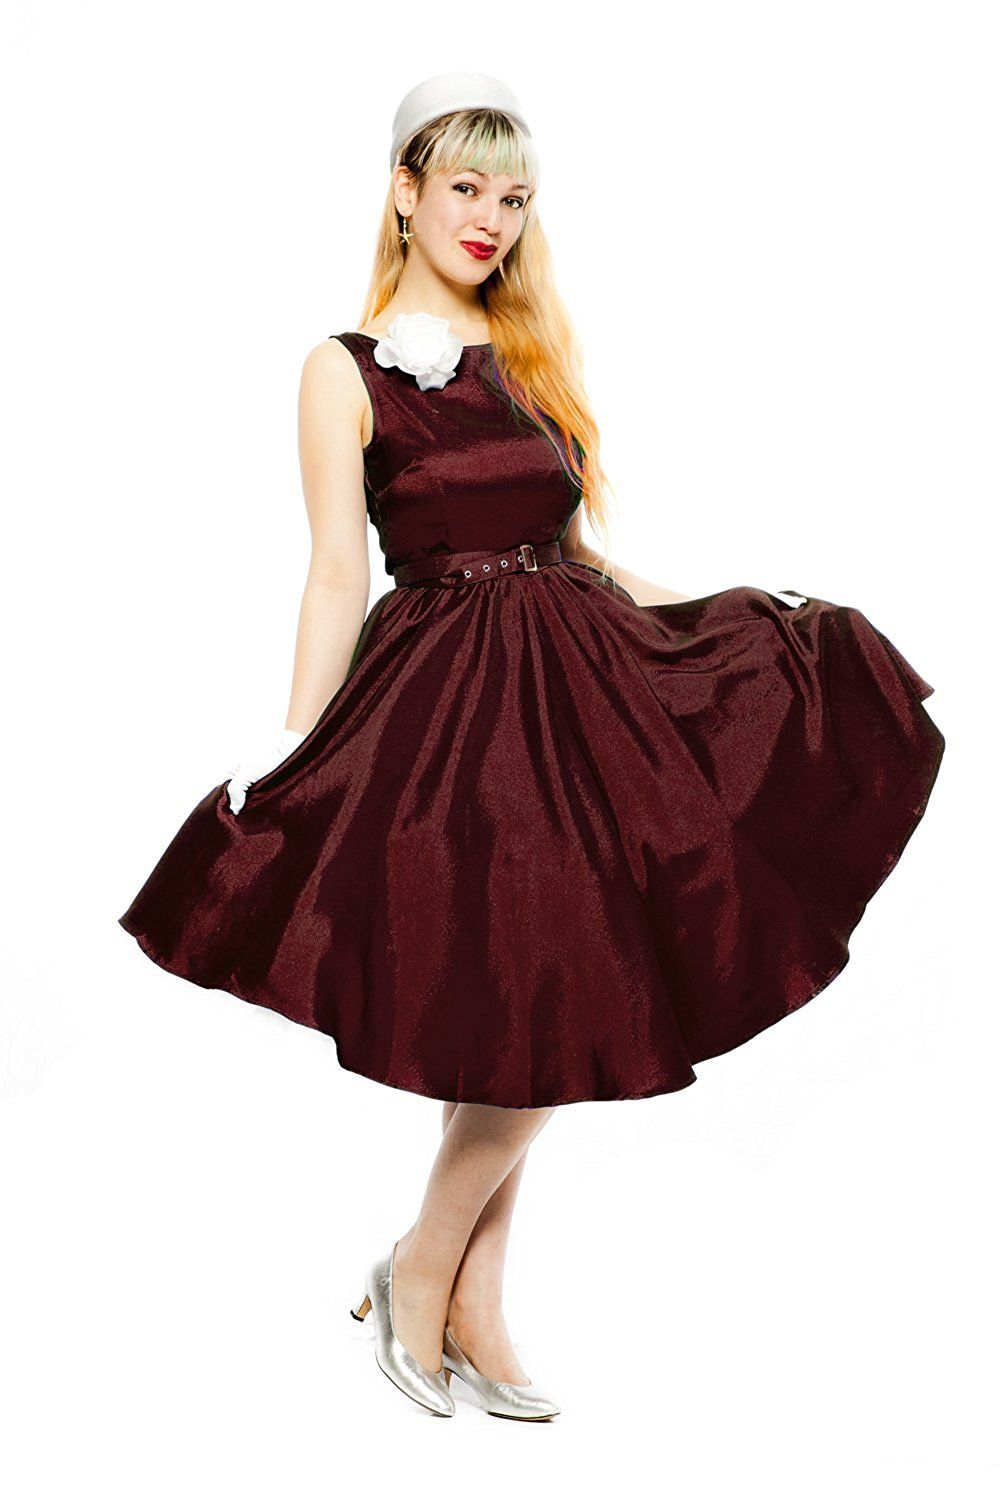 Burgundy Wine Matte Satin Retro 50s Fit And Flare Cocktail Dress Hey Viv Review More 50s Fashion Dresses Fit And Flare Cocktail Dress Black Satin Dress [ 1500 x 1000 Pixel ]